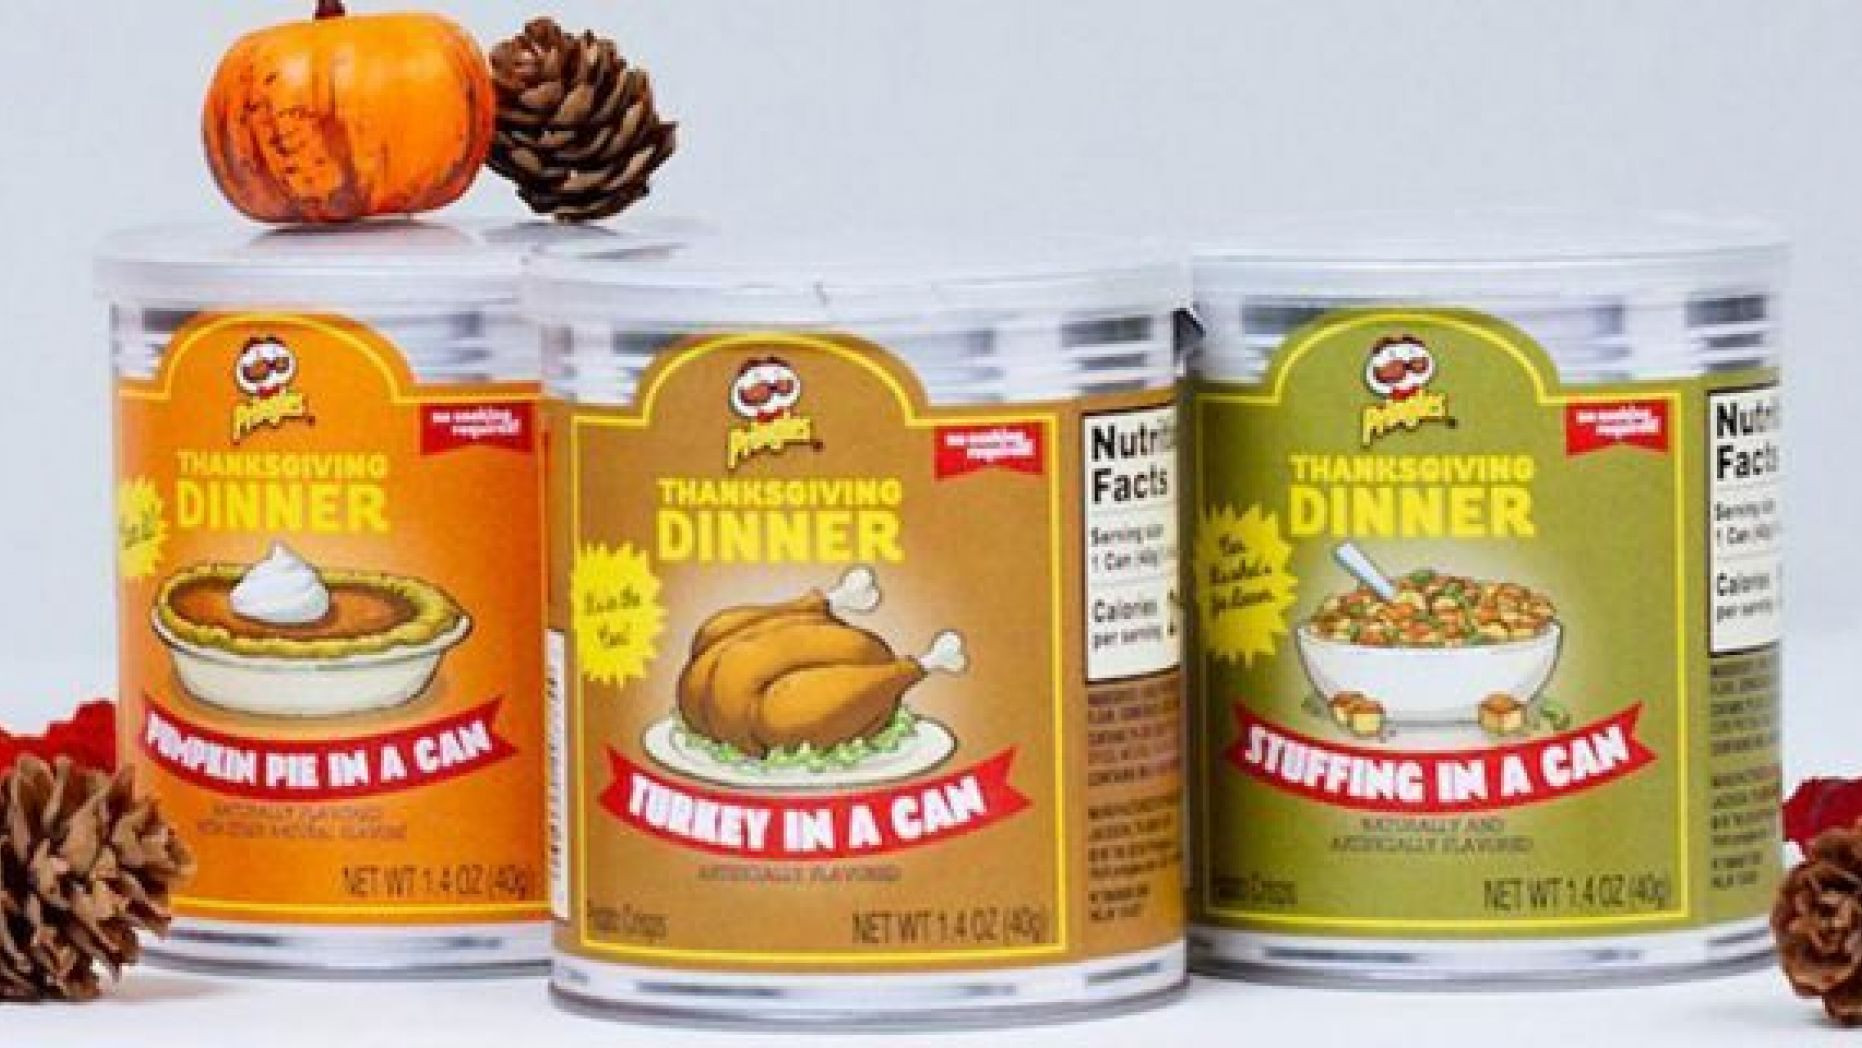 Thanksgiving Dinner Pringles  Pringles selling Thanksgiving dinner in a can with latest